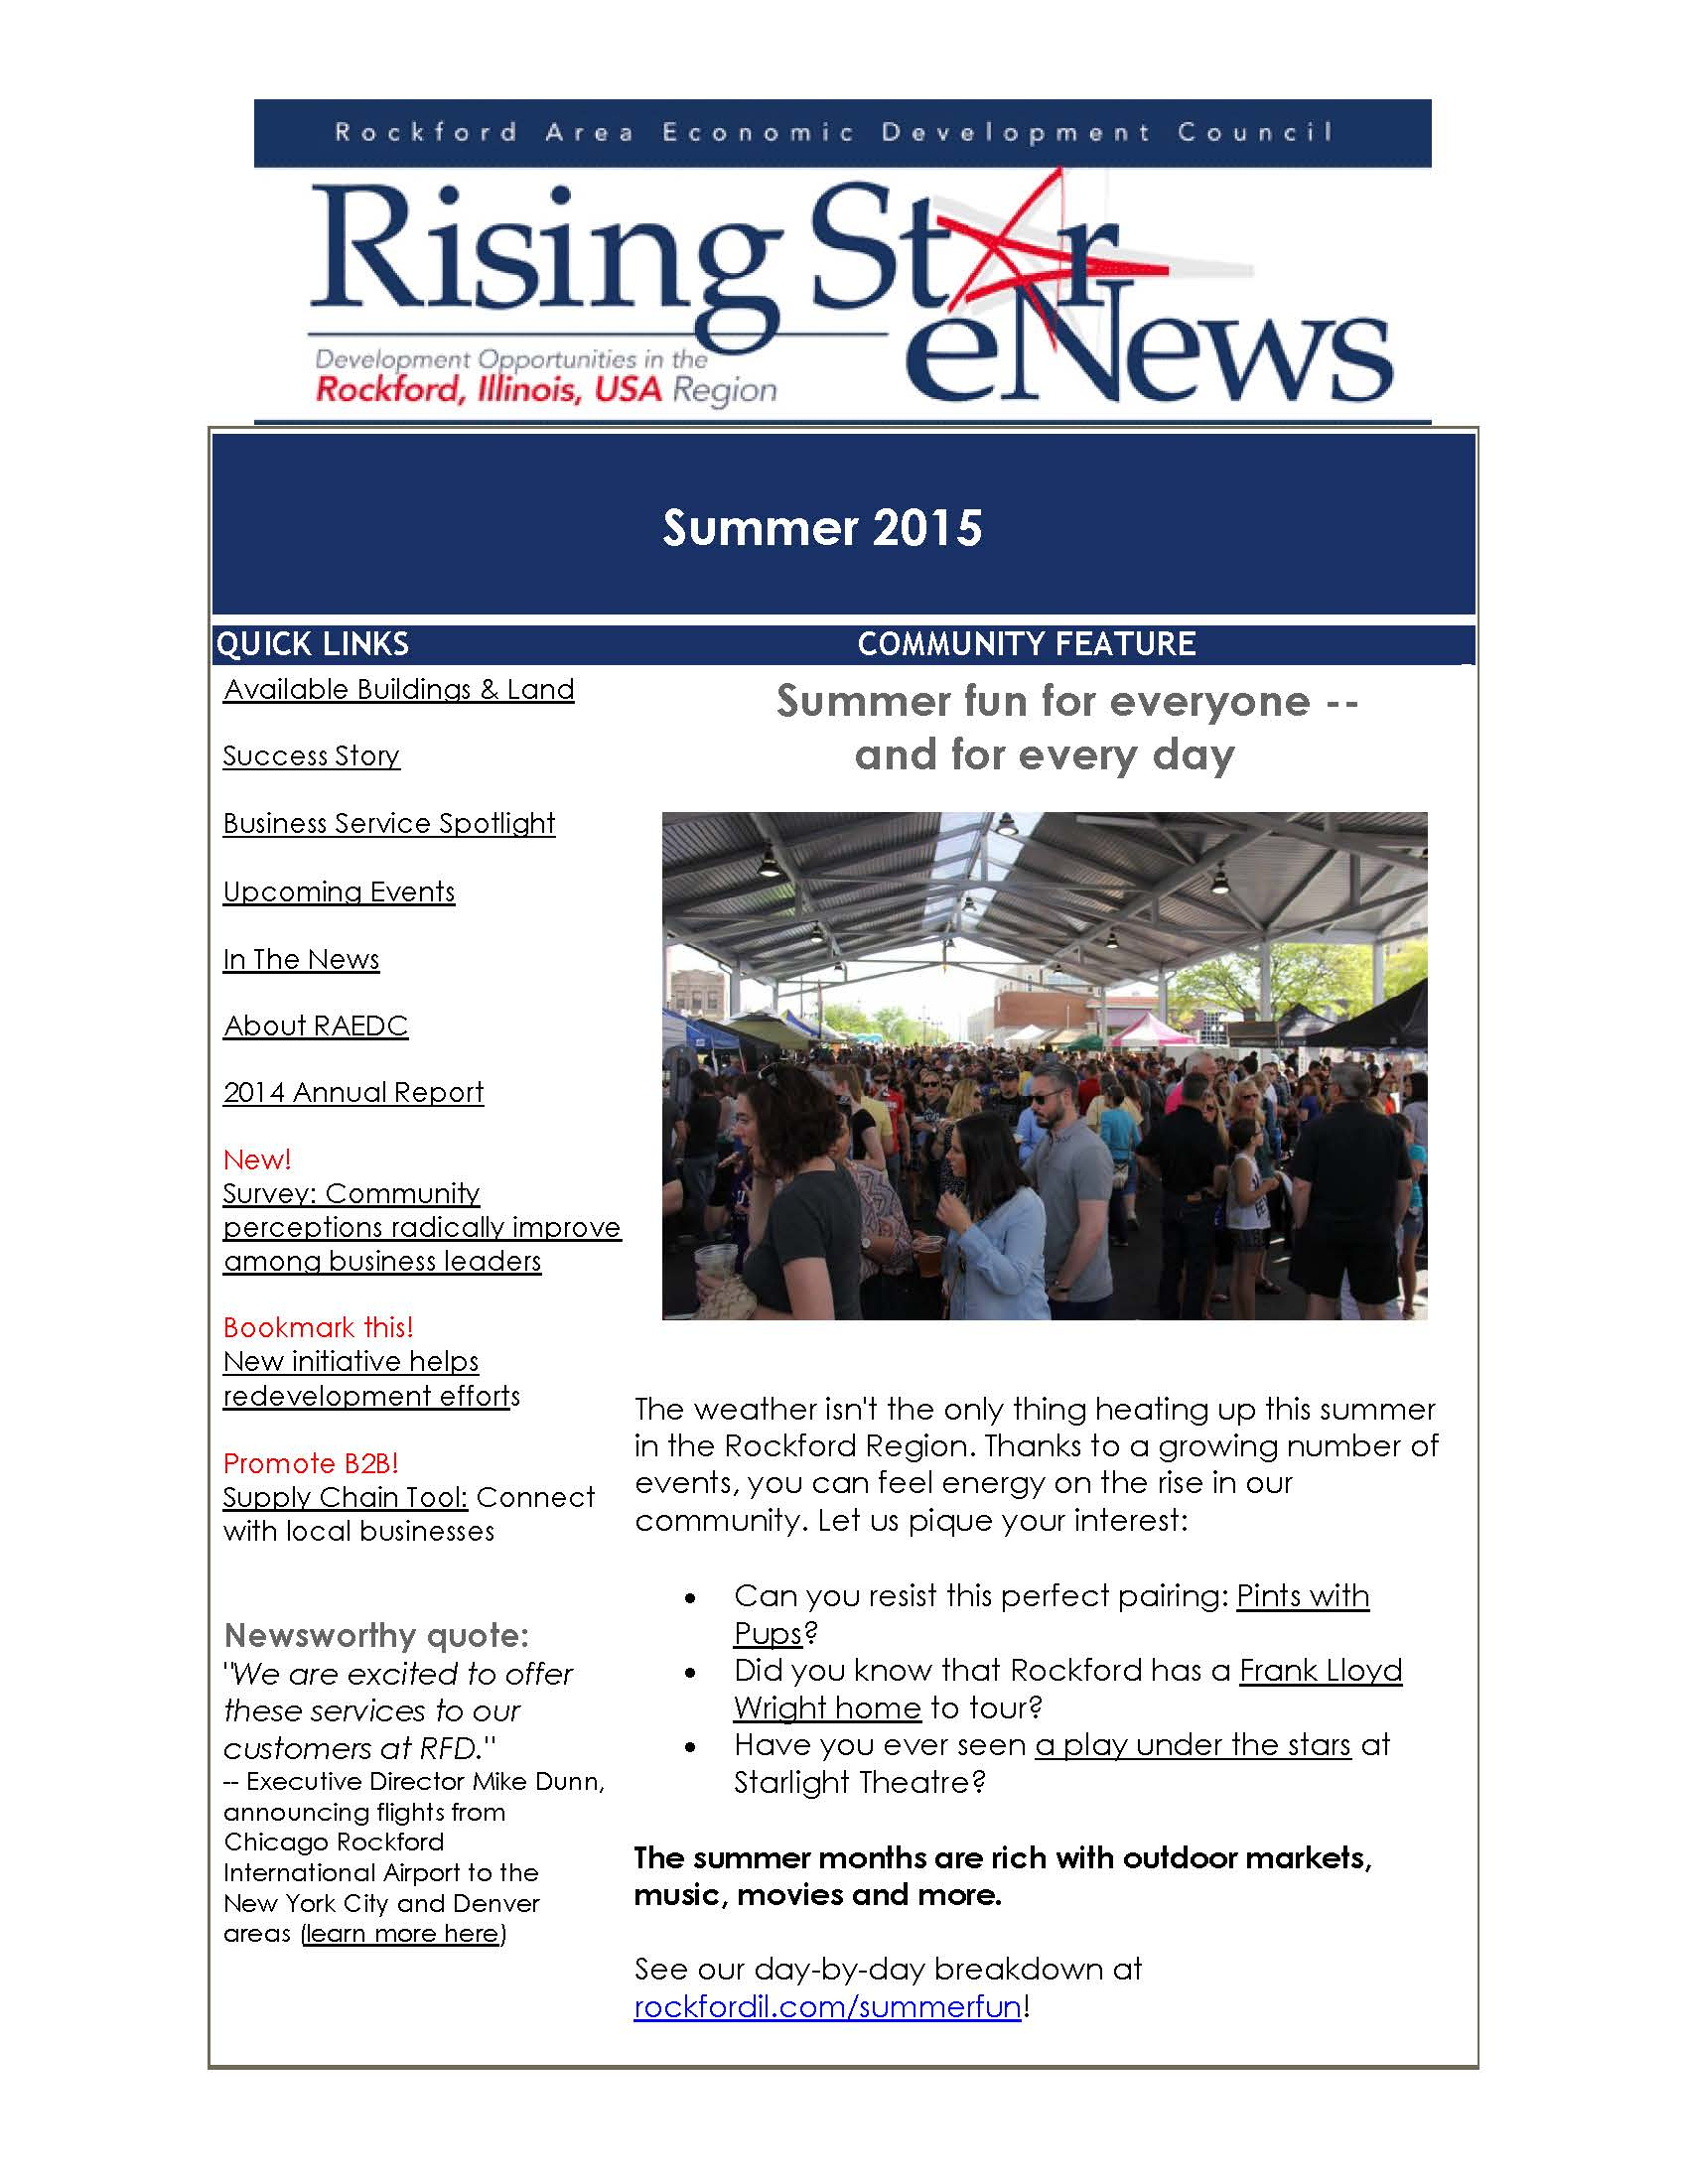 Rising Star Summer 2015 Newsletter focuses on real estate opportunities -- plus fun places to go